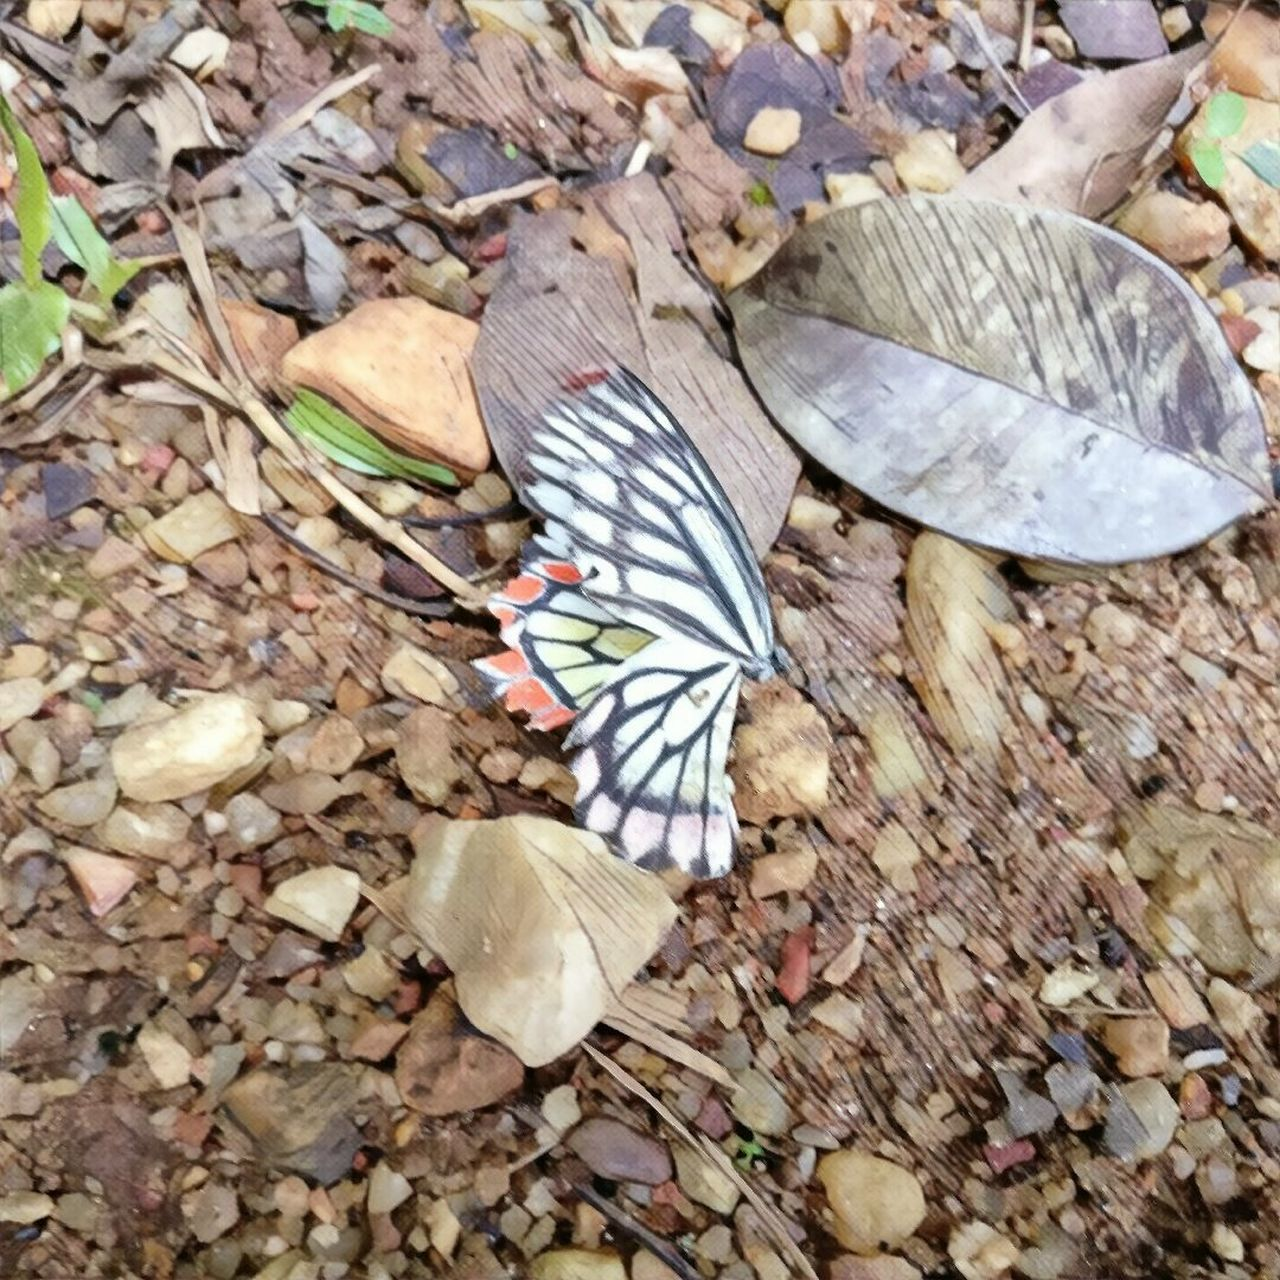 leaf, animal themes, insect, butterfly - insect, one animal, animals in the wild, nature, close-up, no people, high angle view, outdoors, day, fragility, butterfly, animal wildlife, animal markings, beauty in nature, spread wings